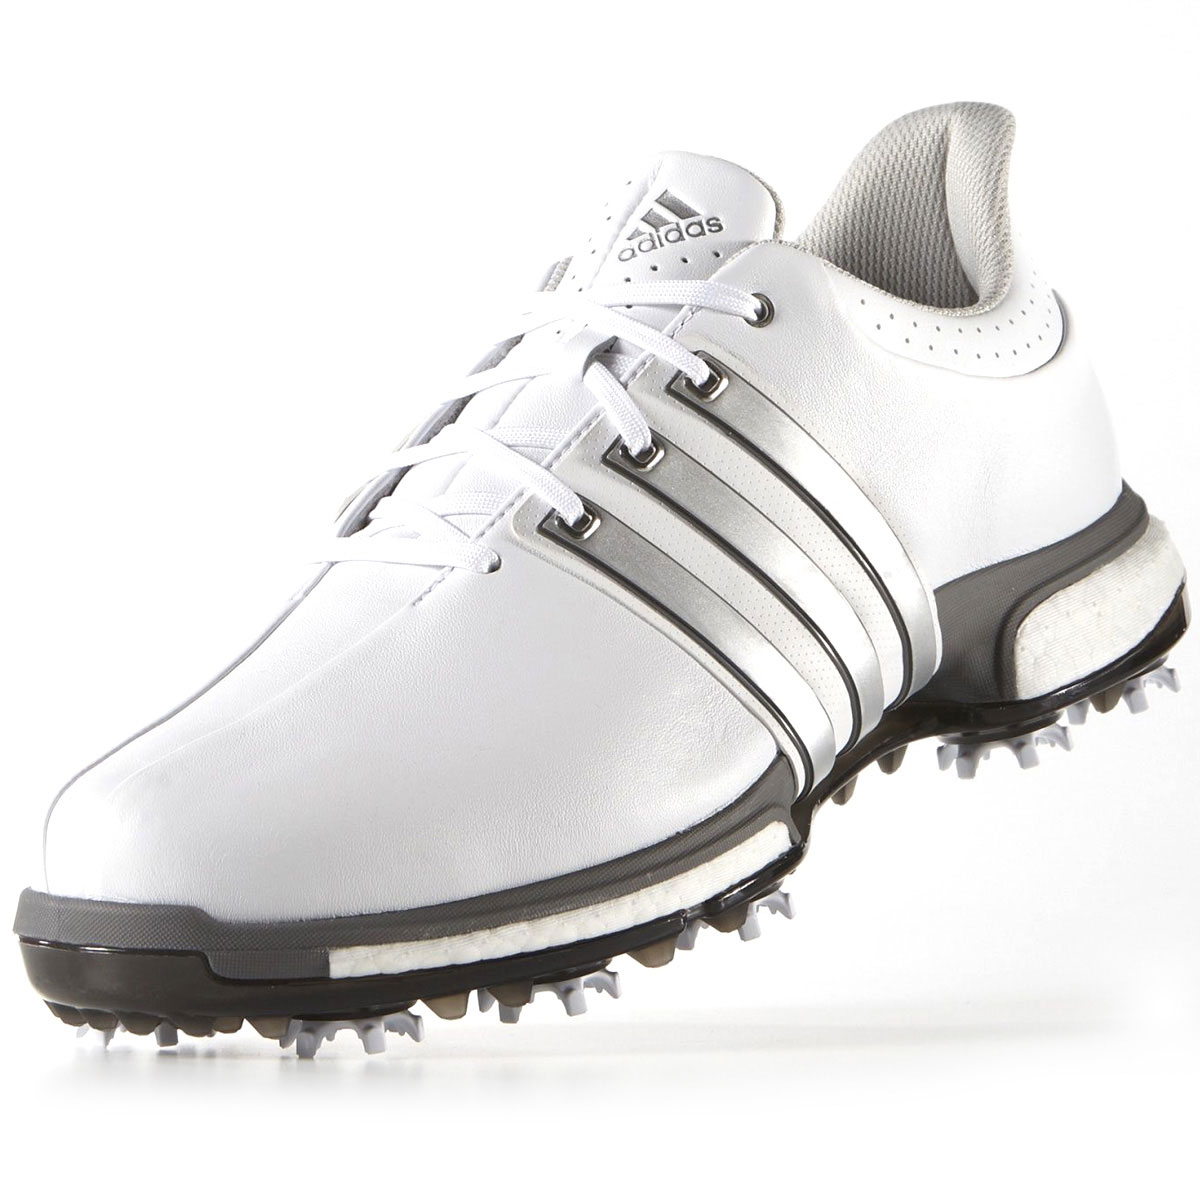 Adidas Golf Shoes Tour